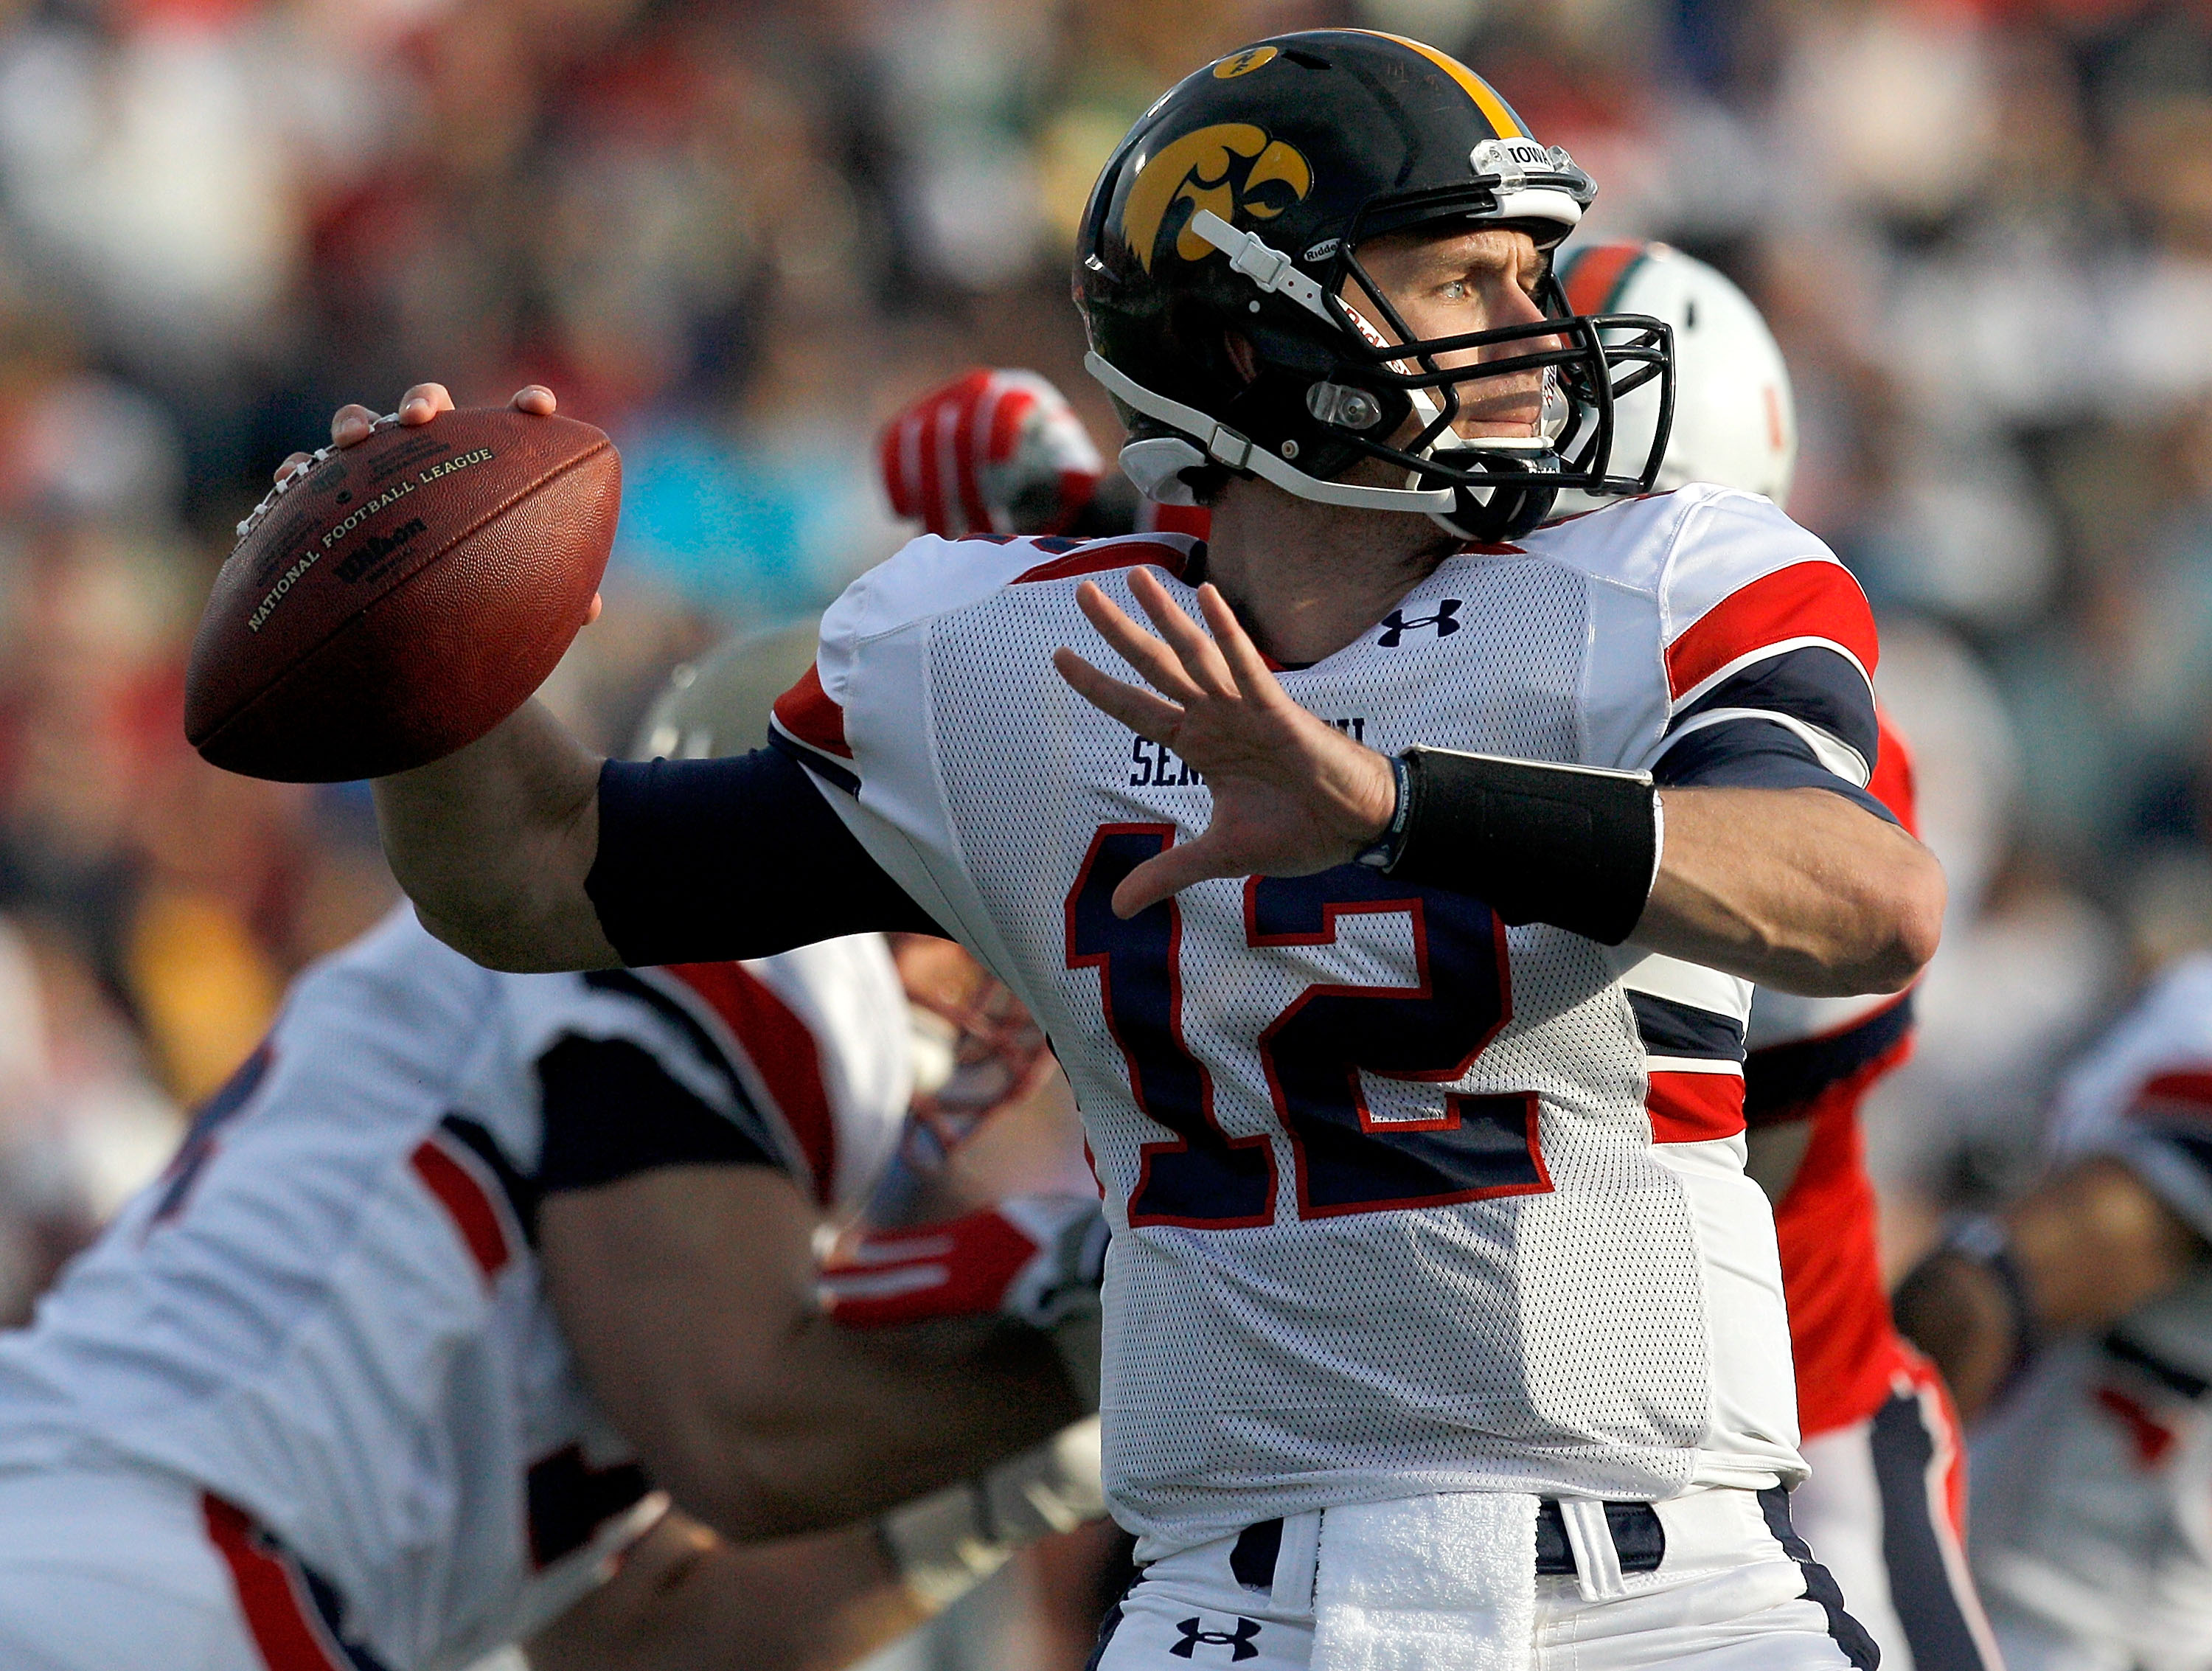 MOBILE, AL - JANUARY 29: Quarterback Ricky Stanzi #12 of the North Team passes over South Team defenders during second quarter of the Under Armour Senior Bowl on January 29, 2011 at Ladd Peebles Stadium in Mobile, Alabama.  (Photo by Sean Gardner/Getty Im